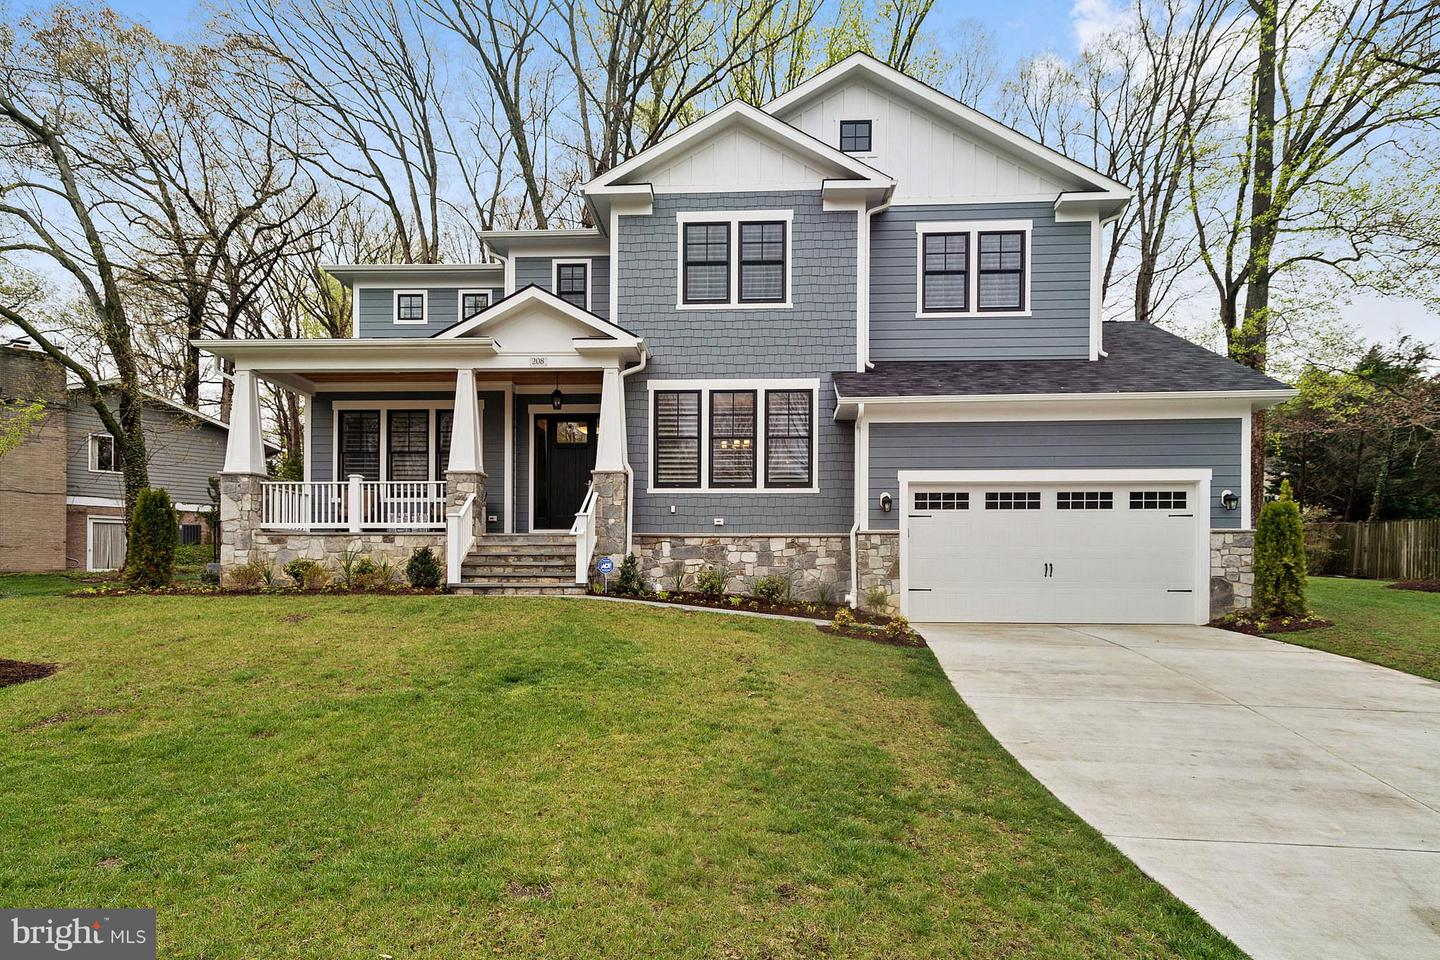 Single Family Home for Sale at 208 Audreys Ct SE 208 Audreys Ct SE Vienna, Virginia 22180 United States